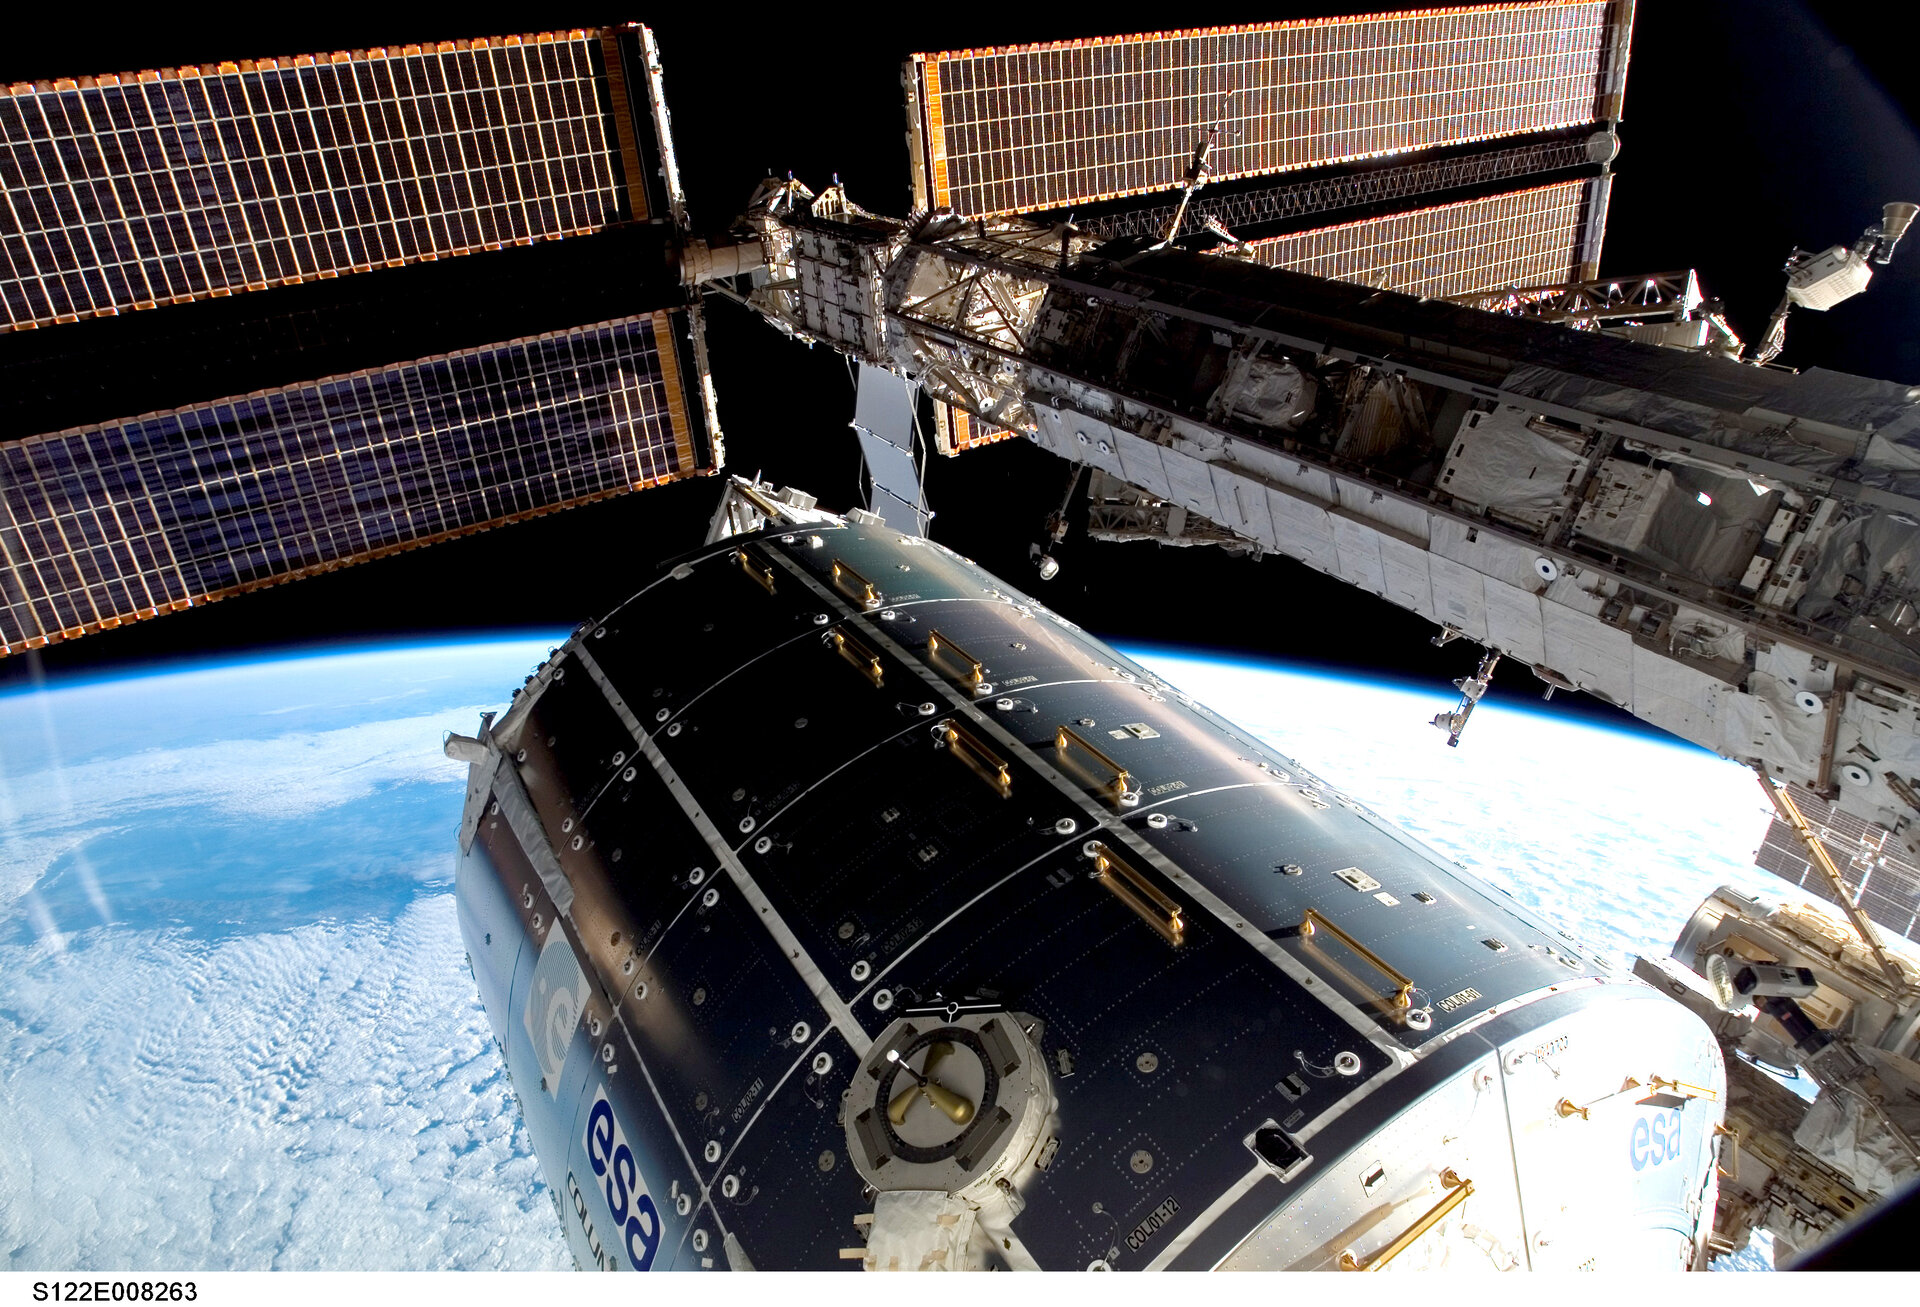 Columbus laboratory attached to International Space Station